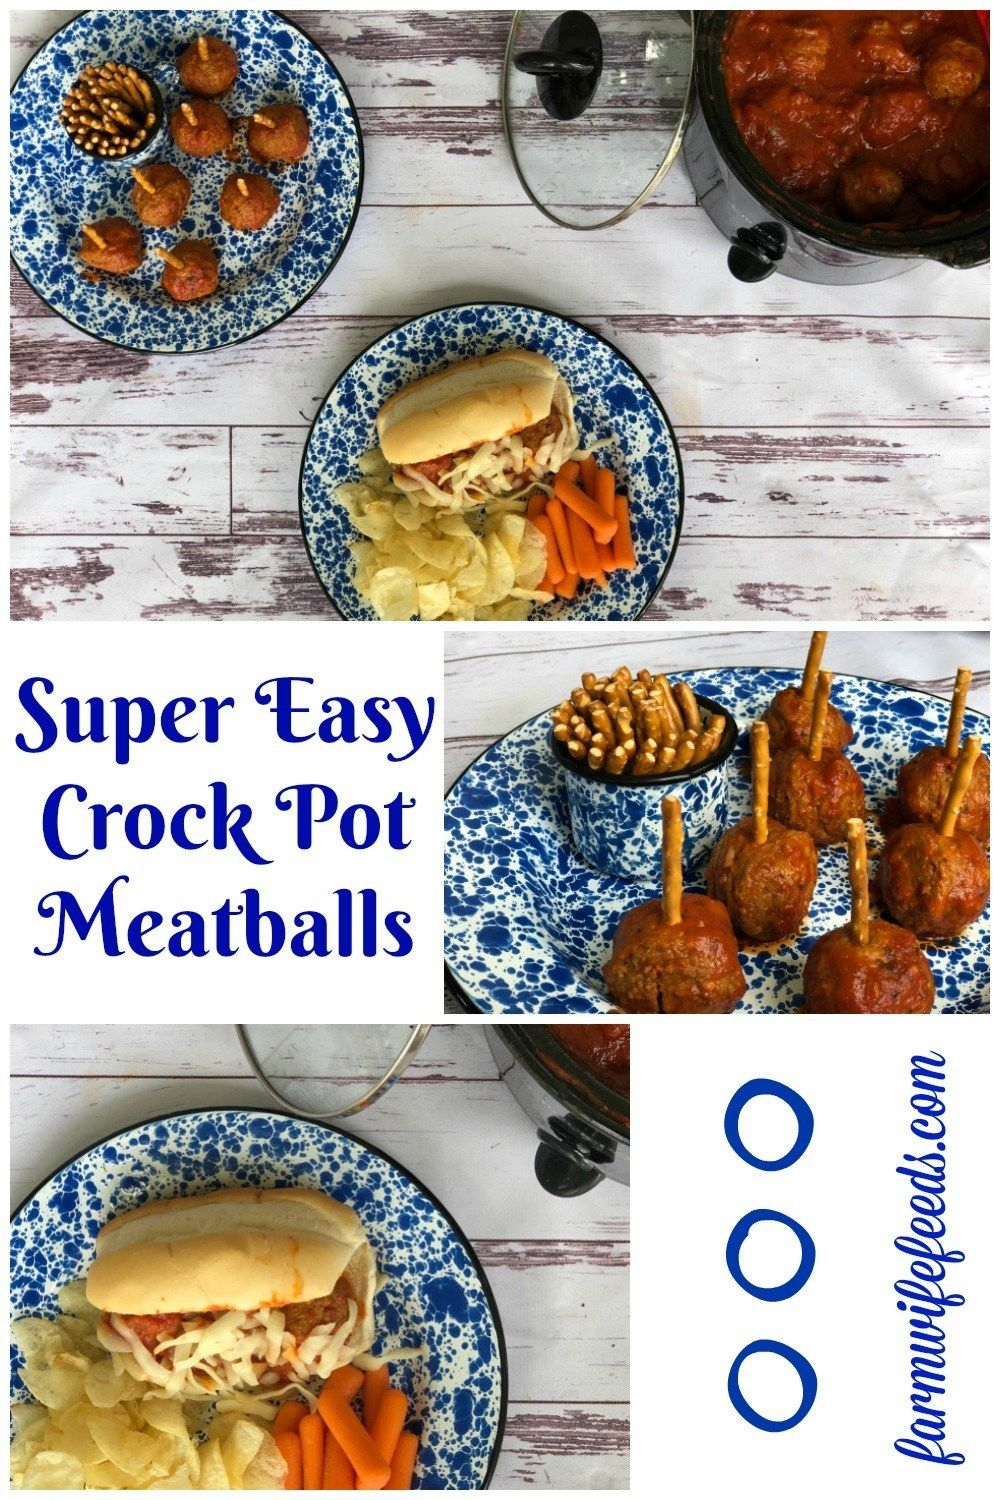 Super Easy Crock Pot Meatballs From Farmwife Feeds Are A Great